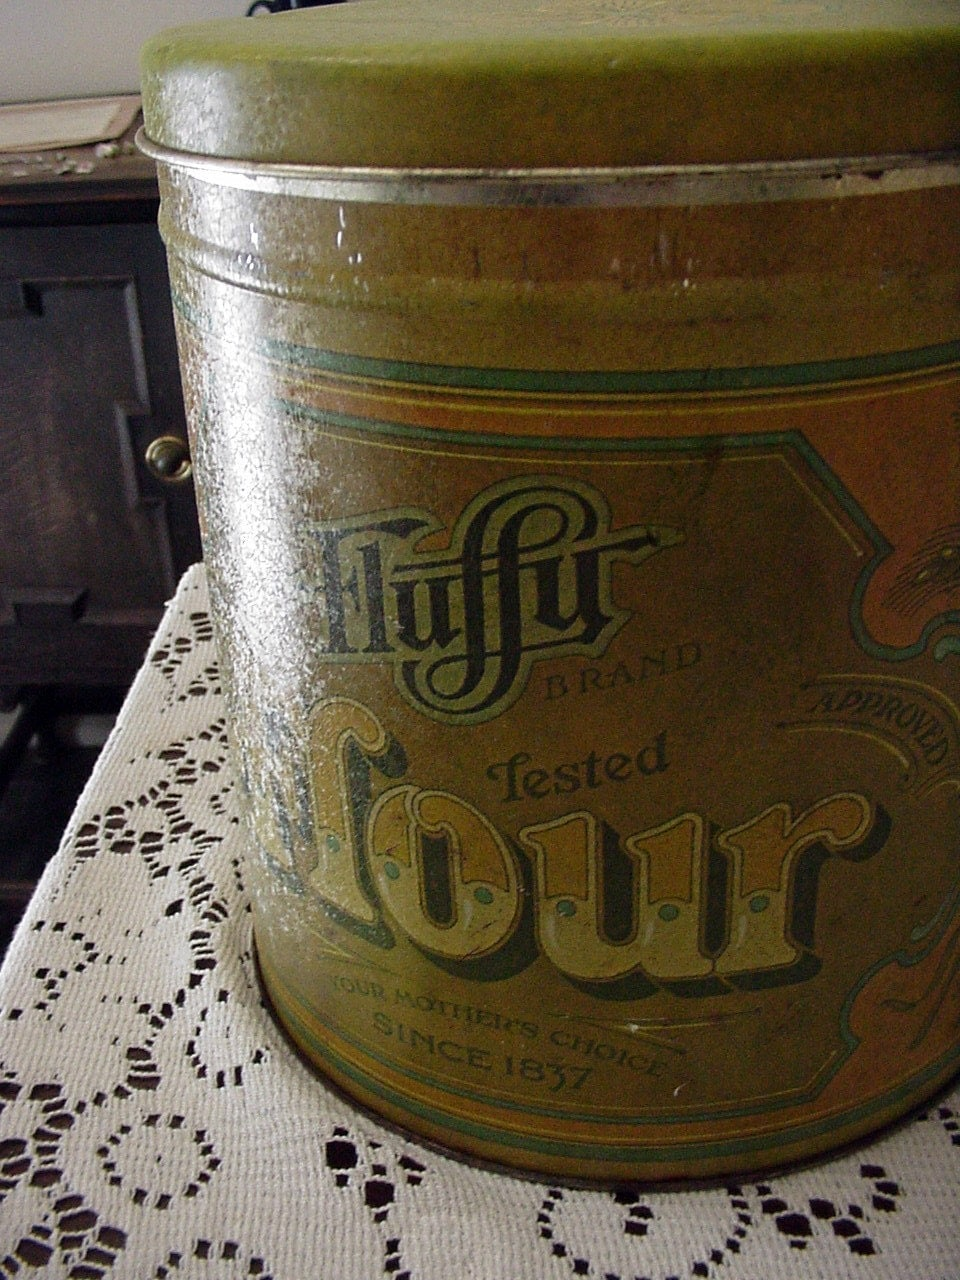 fluffy brand flour canister 1970s green antique look